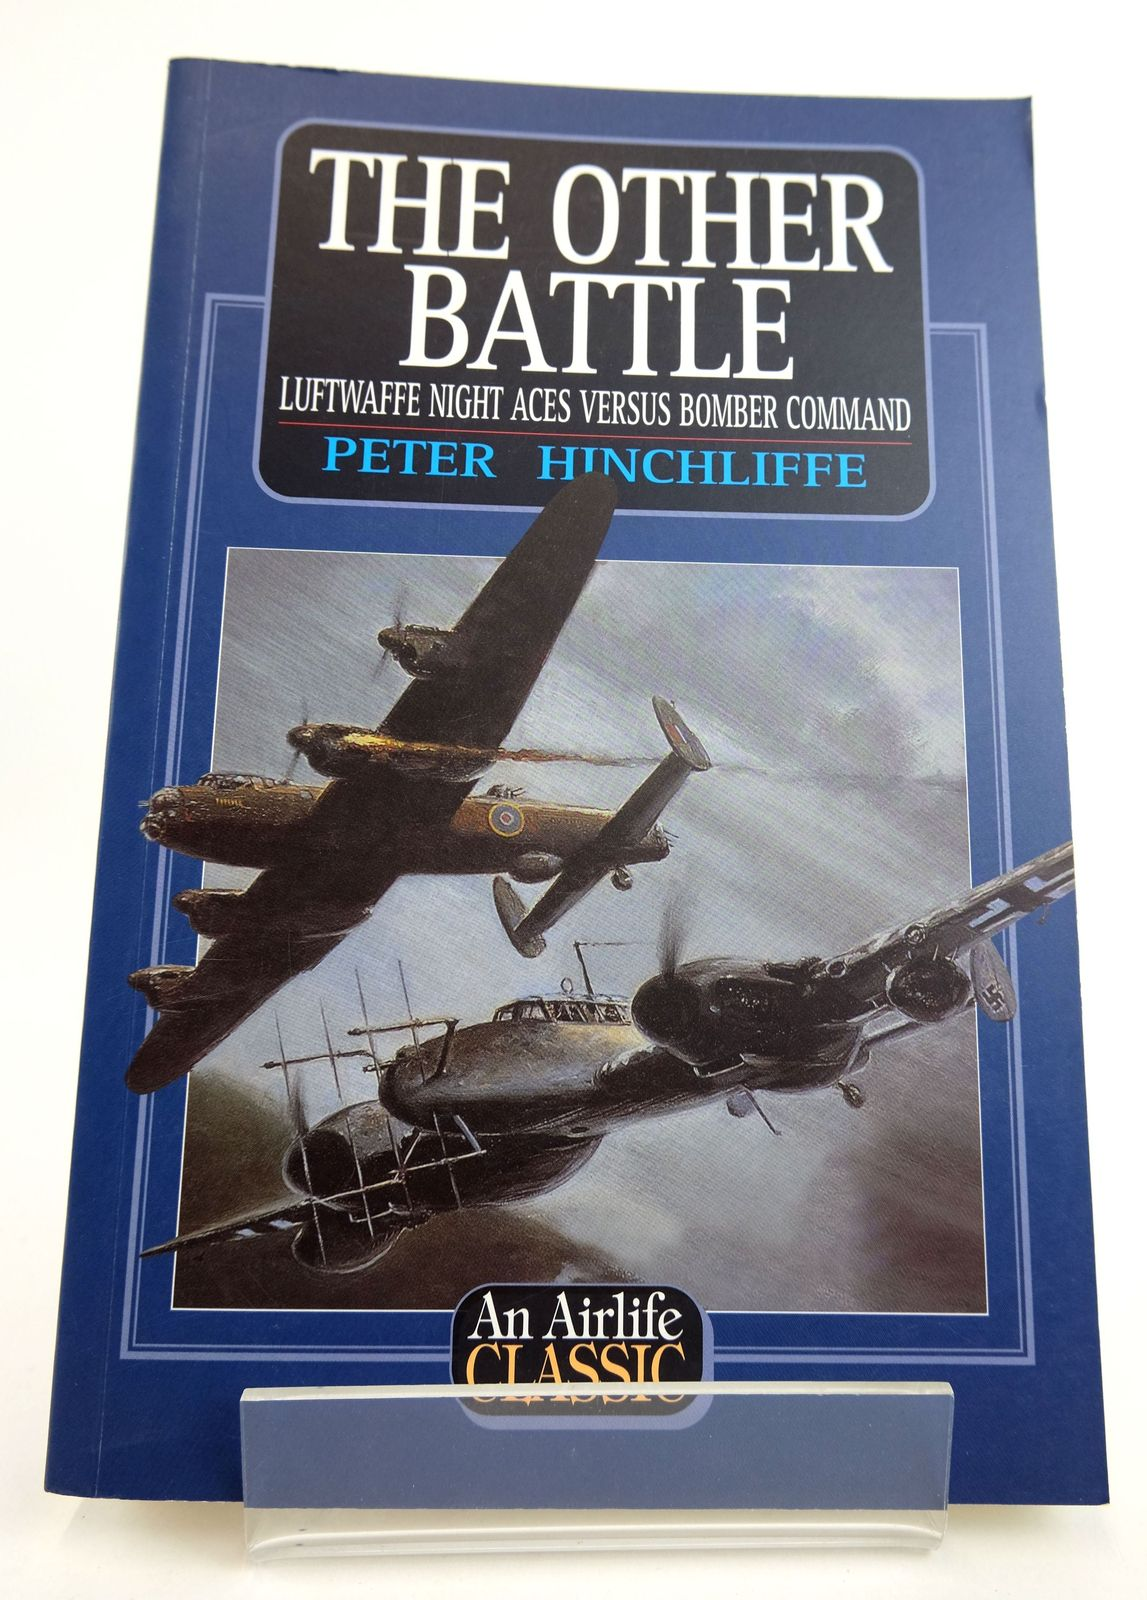 Photo of THE OTHER BATTLE: LUFTWAFFE NIGHT ACES VERSUS BOMBER COMMAND written by Hinchliffe, Peter published by Airlife (STOCK CODE: 1819010)  for sale by Stella & Rose's Books